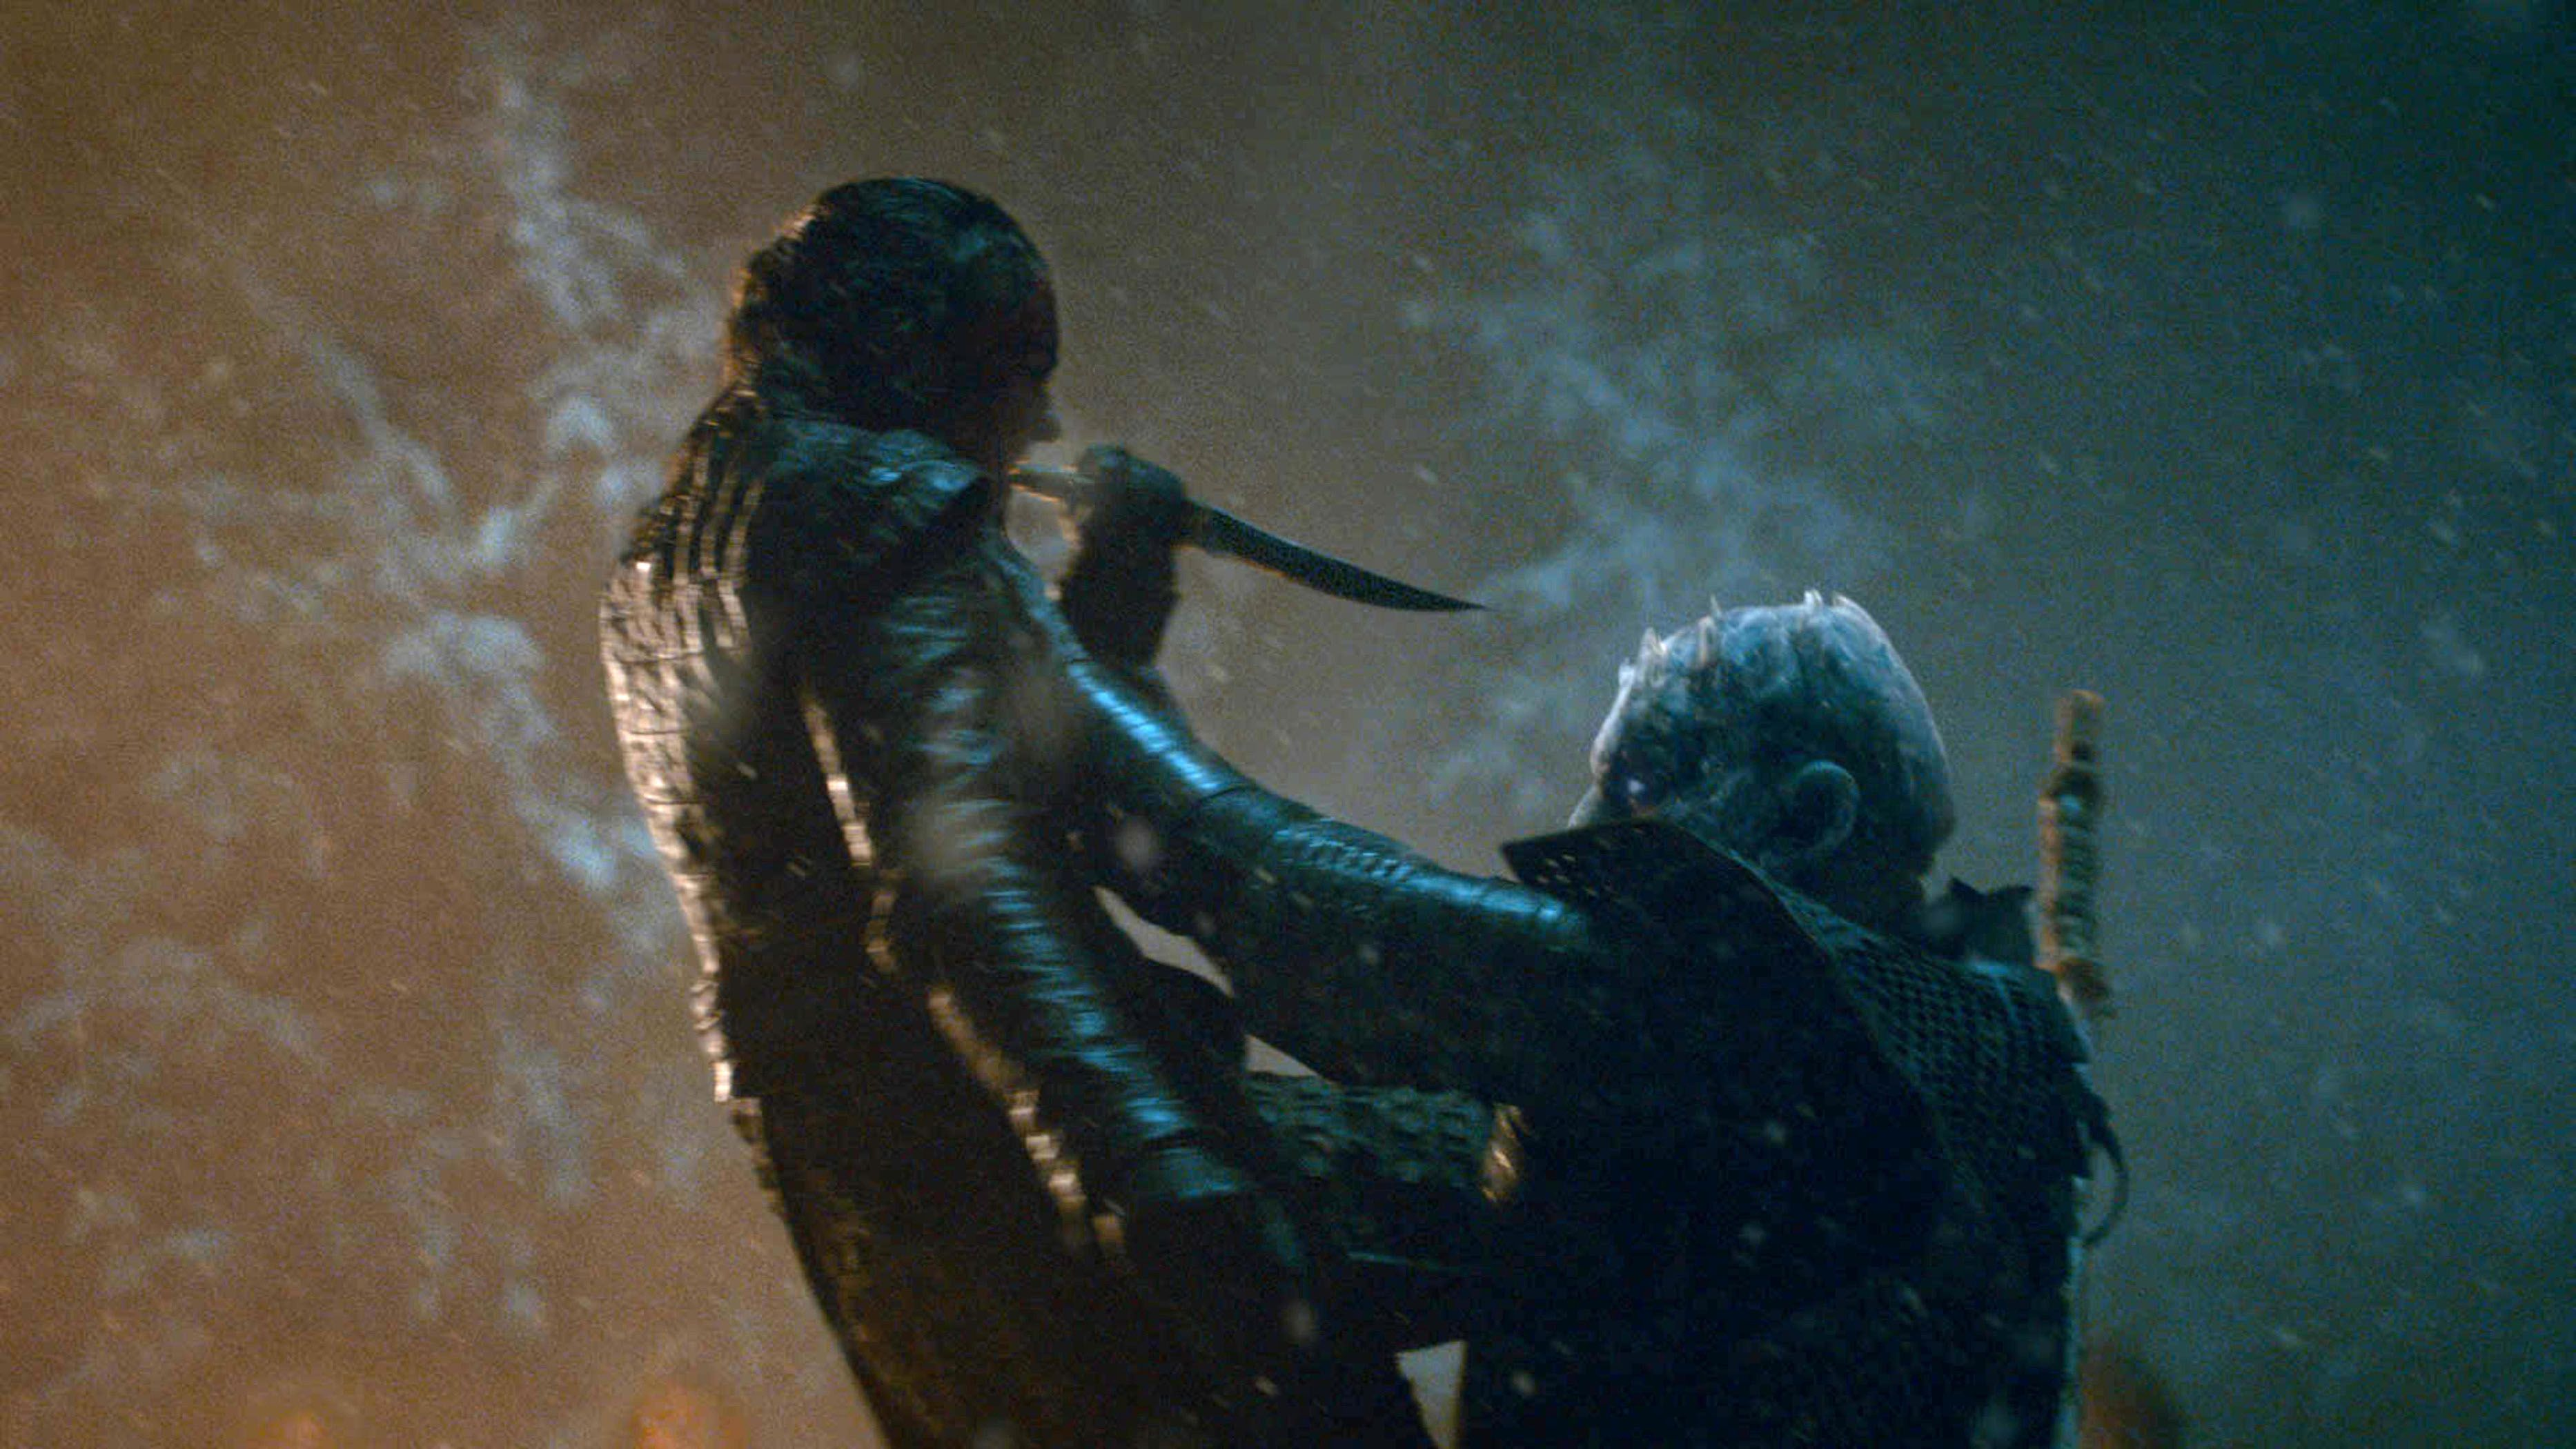 Arya Stark Is the Only Game of Thrones Character Who Could've Killed